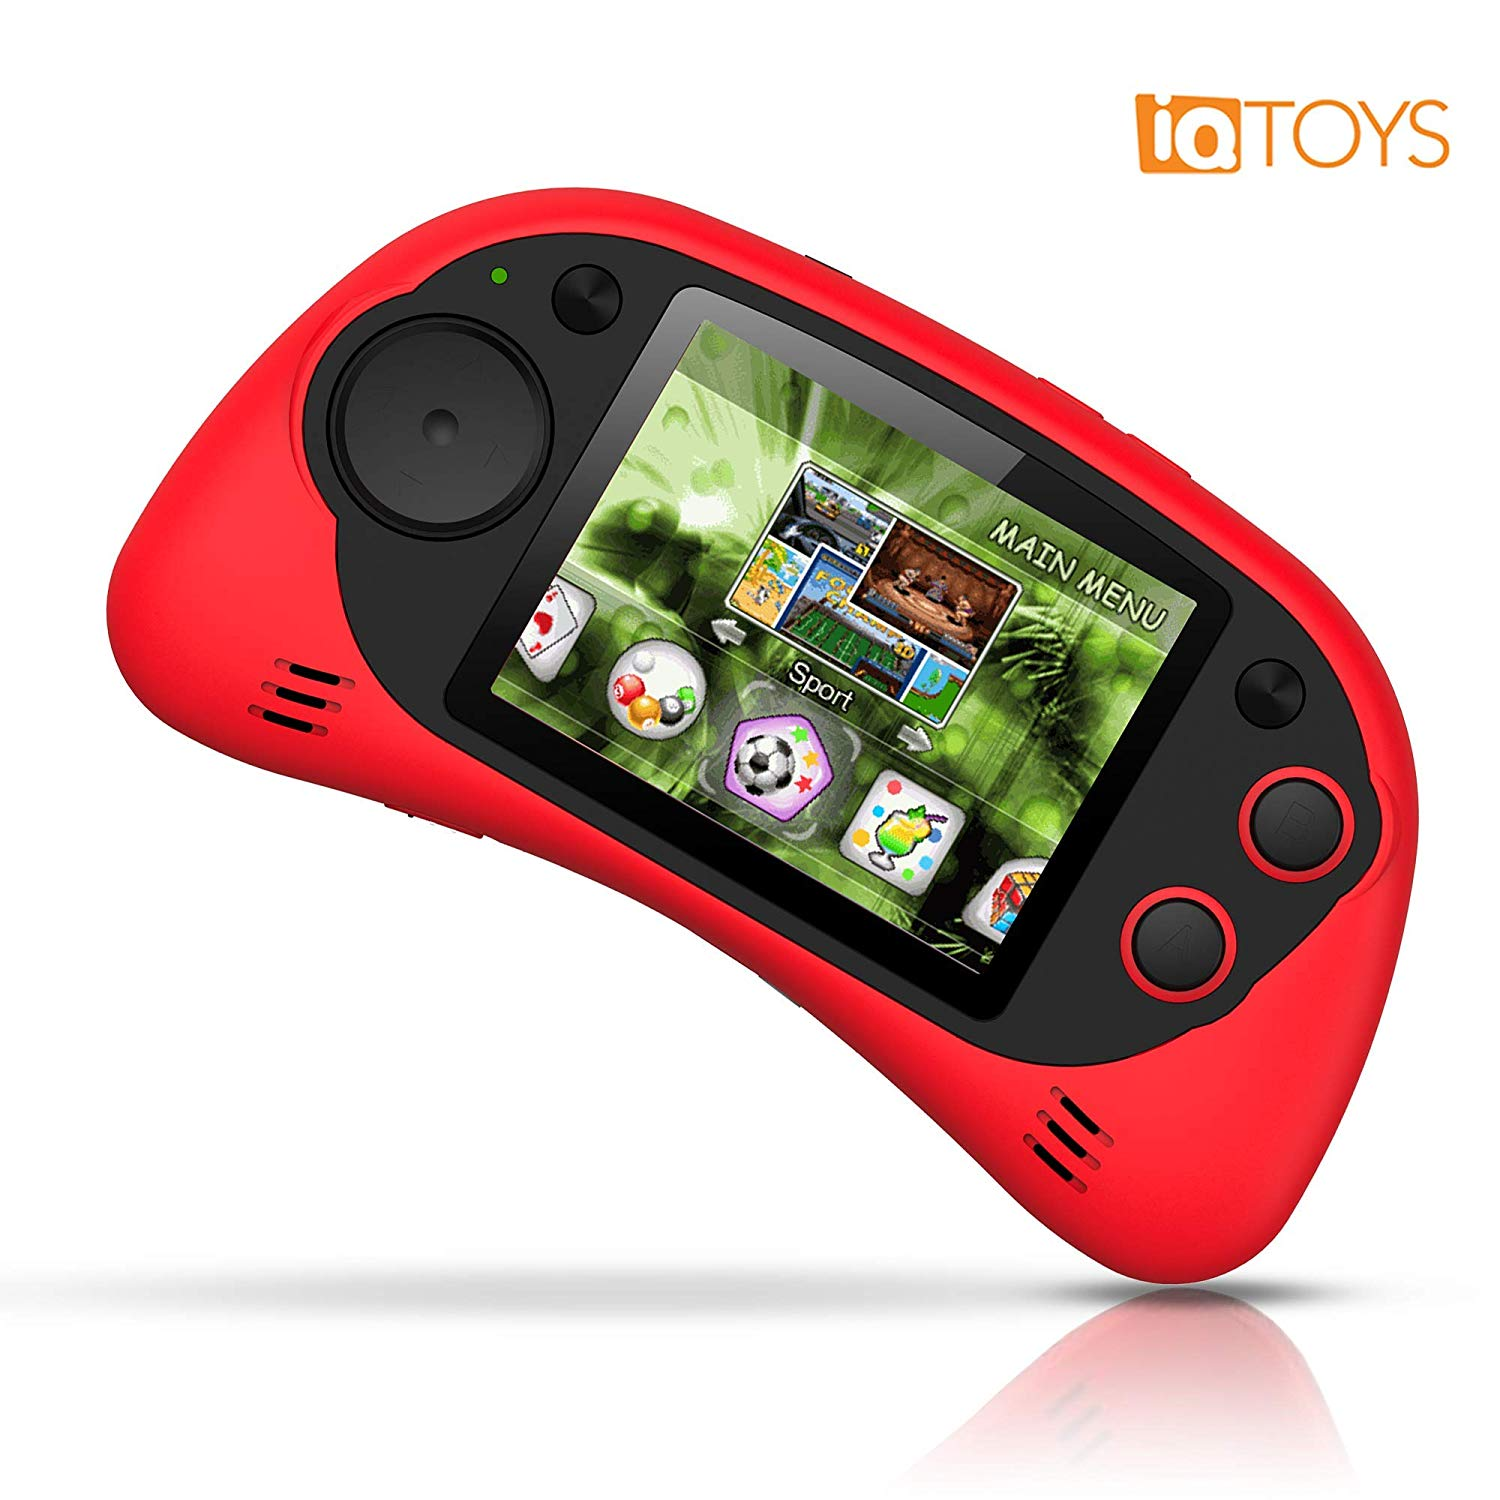 "IQ Toys Handheld Arcade Game Zone Player Console Classic 200 Preloaded Video Games for Kids, 16 BIT Large 2.7"" Screen, Rechargable, Red"